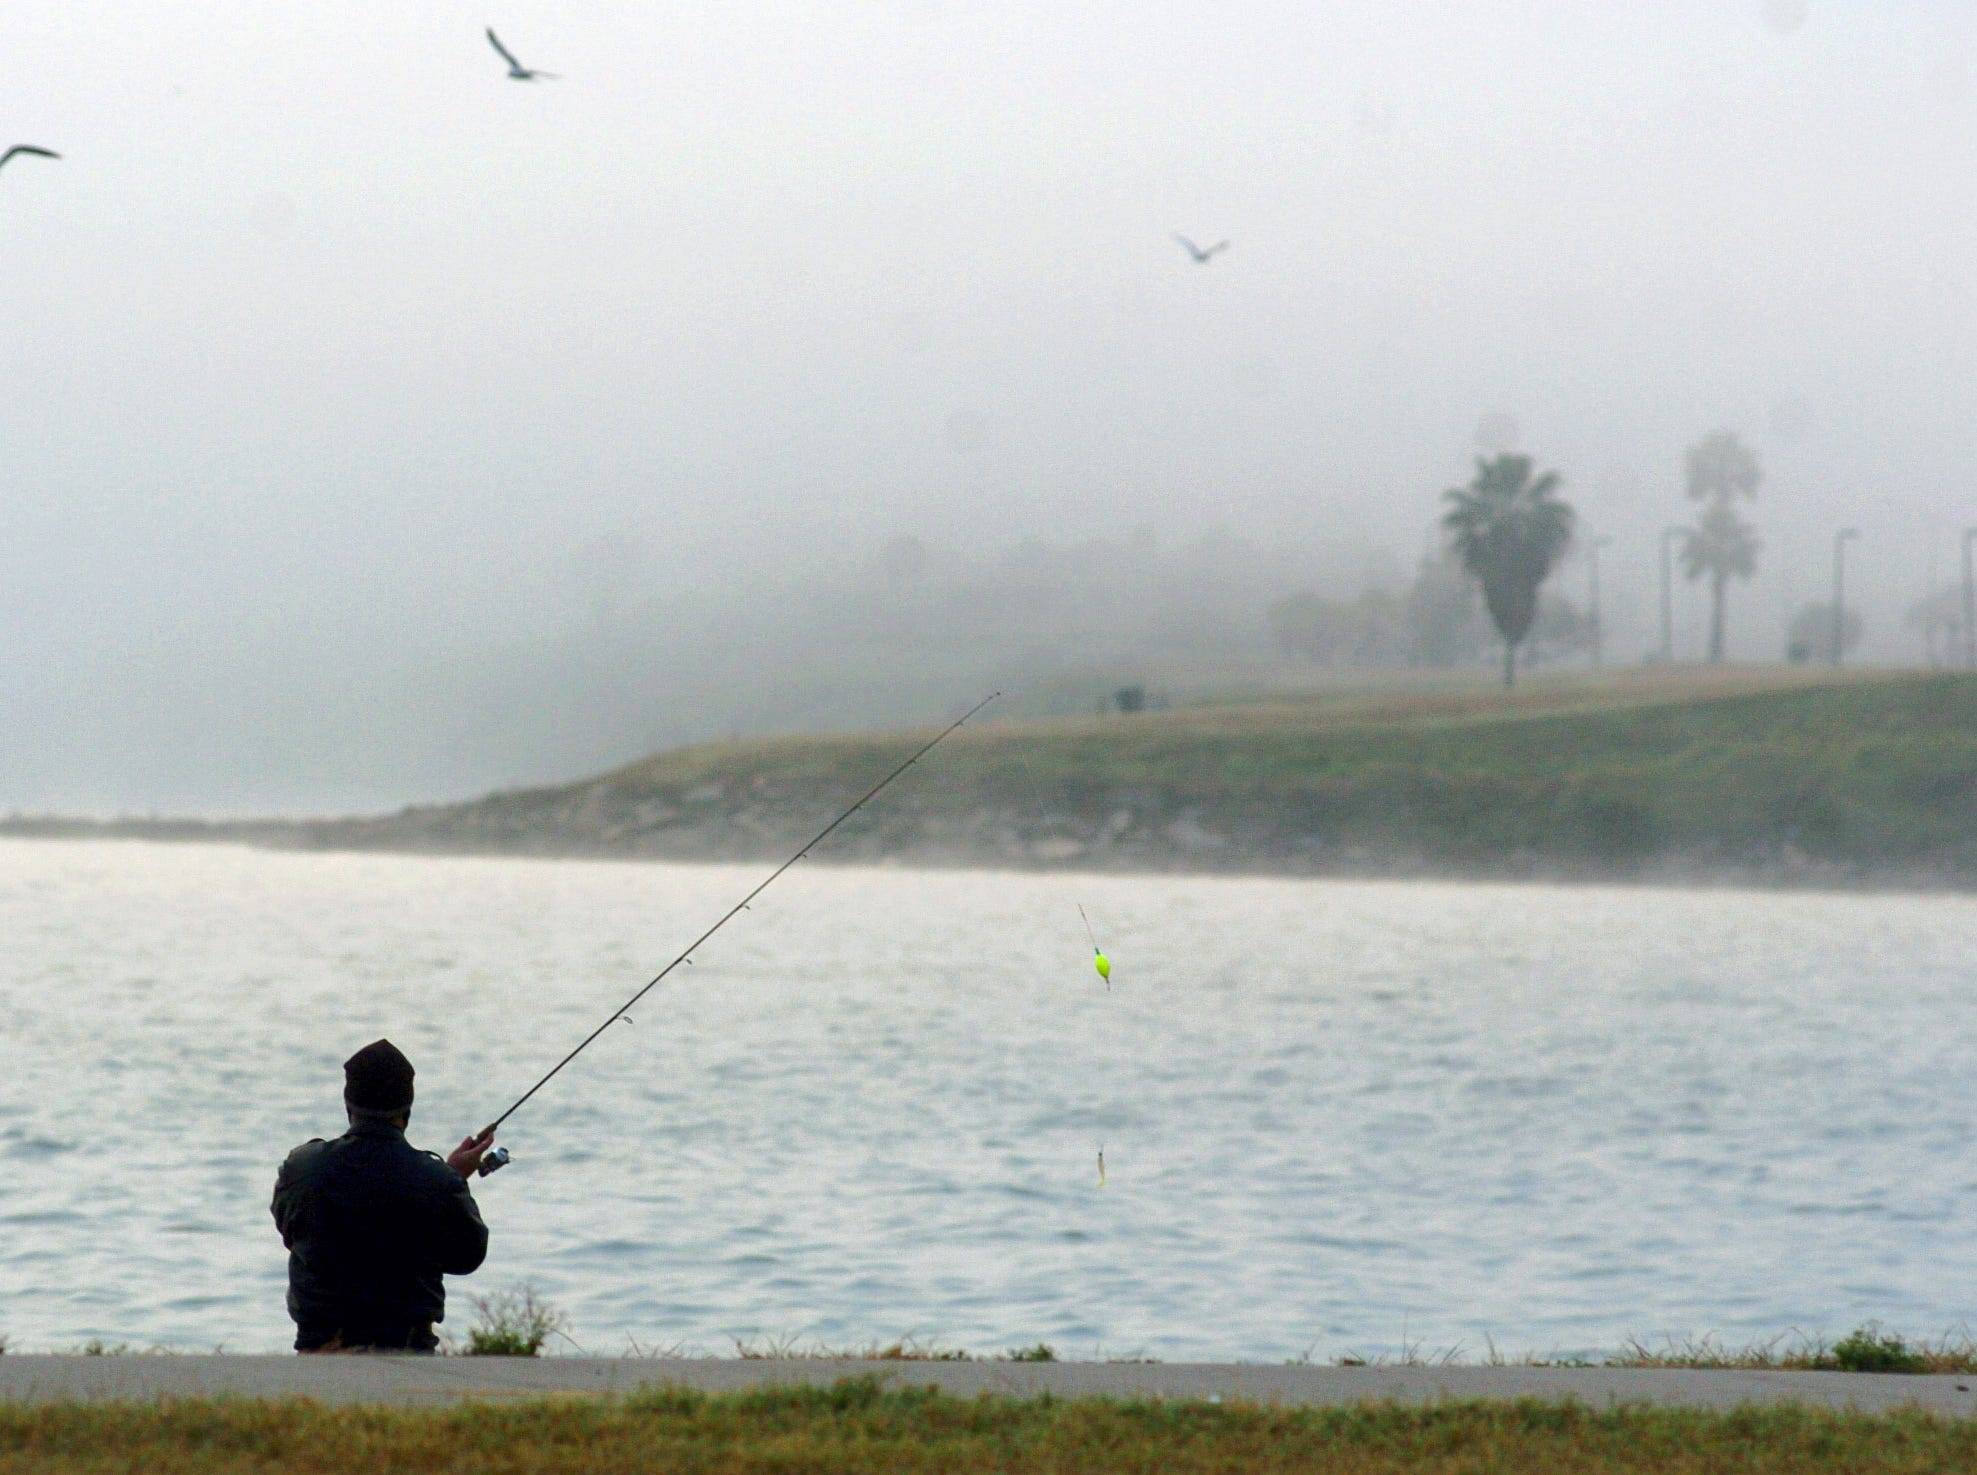 A thick, early morning fog starts to break up along the bay as Joe Davenport of Corpus Christi recasts his line into the water Tuesday, Dec. 25, 2007, along Cole Park in Corpus Christ. Davenport, who tries to get out and fish as much as he can, said the darkness a thick fog creates can sometimes keep the fish around a little longer in the mornings.